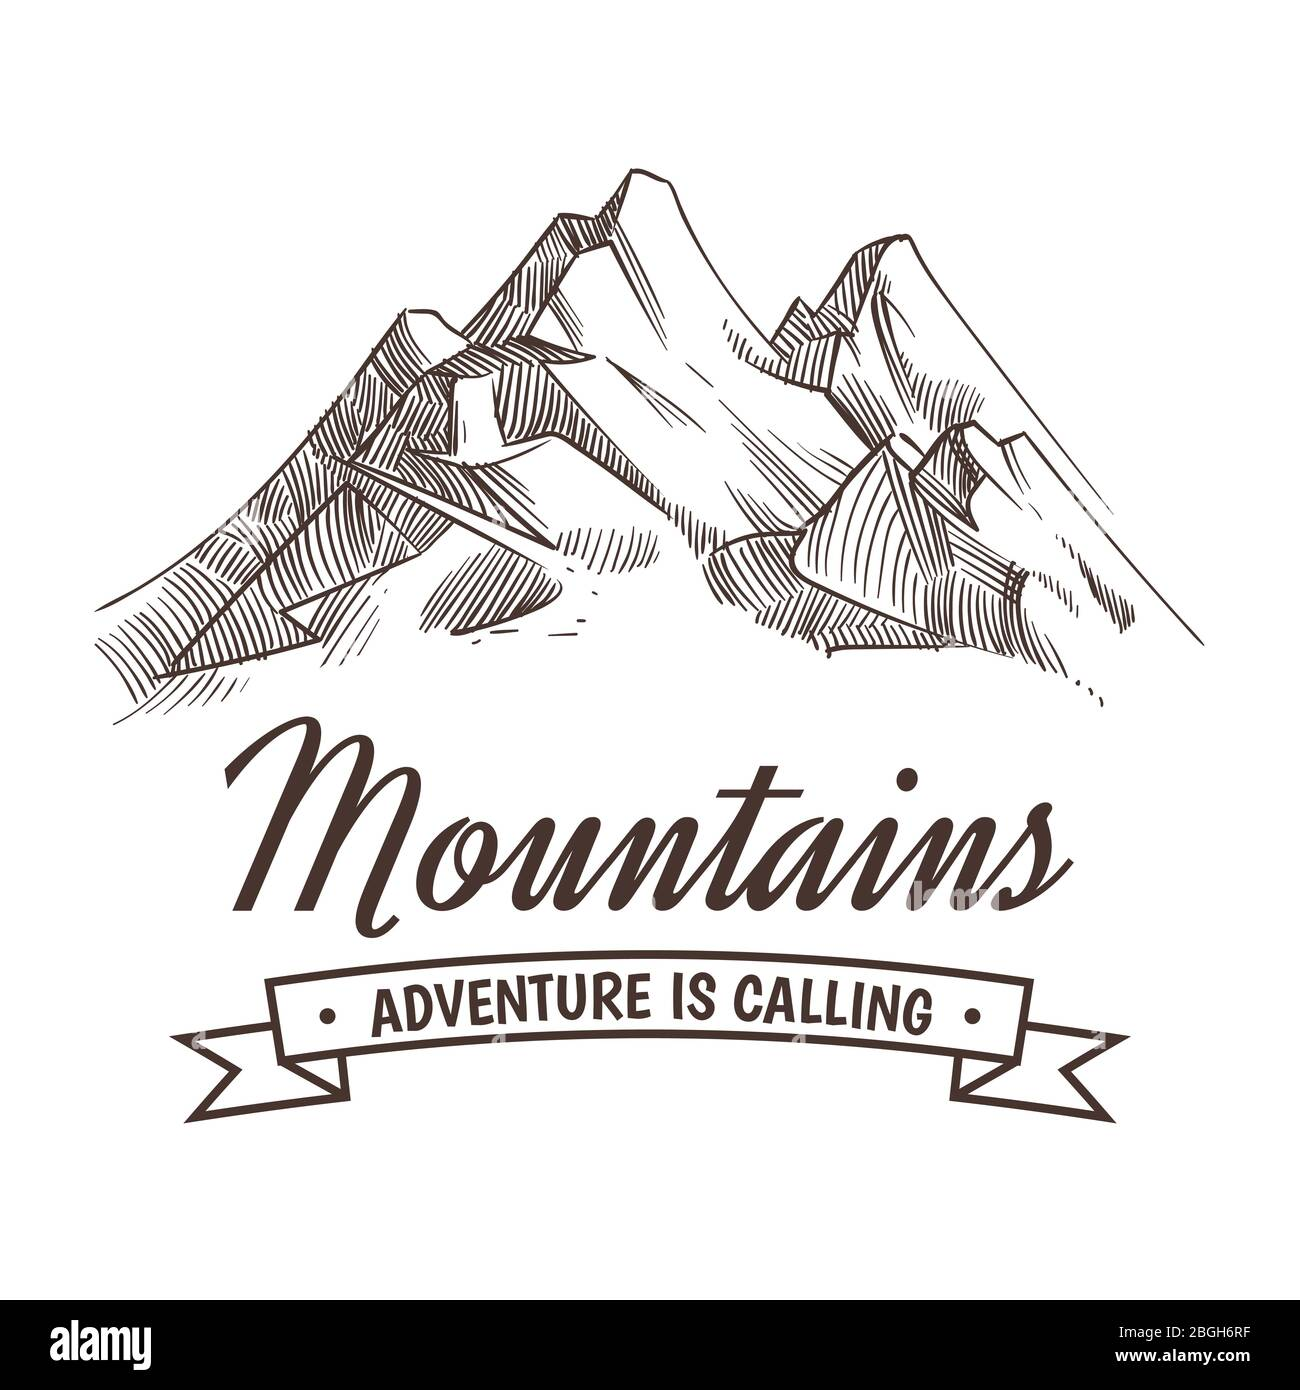 Hand Drawing High Mountain Peak And Forest Vintage Adventure Vector Poster With Sketched Mountains Mountain Adventure Banner Travel Poster With Peak Illustration Stock Vector Image Art Alamy